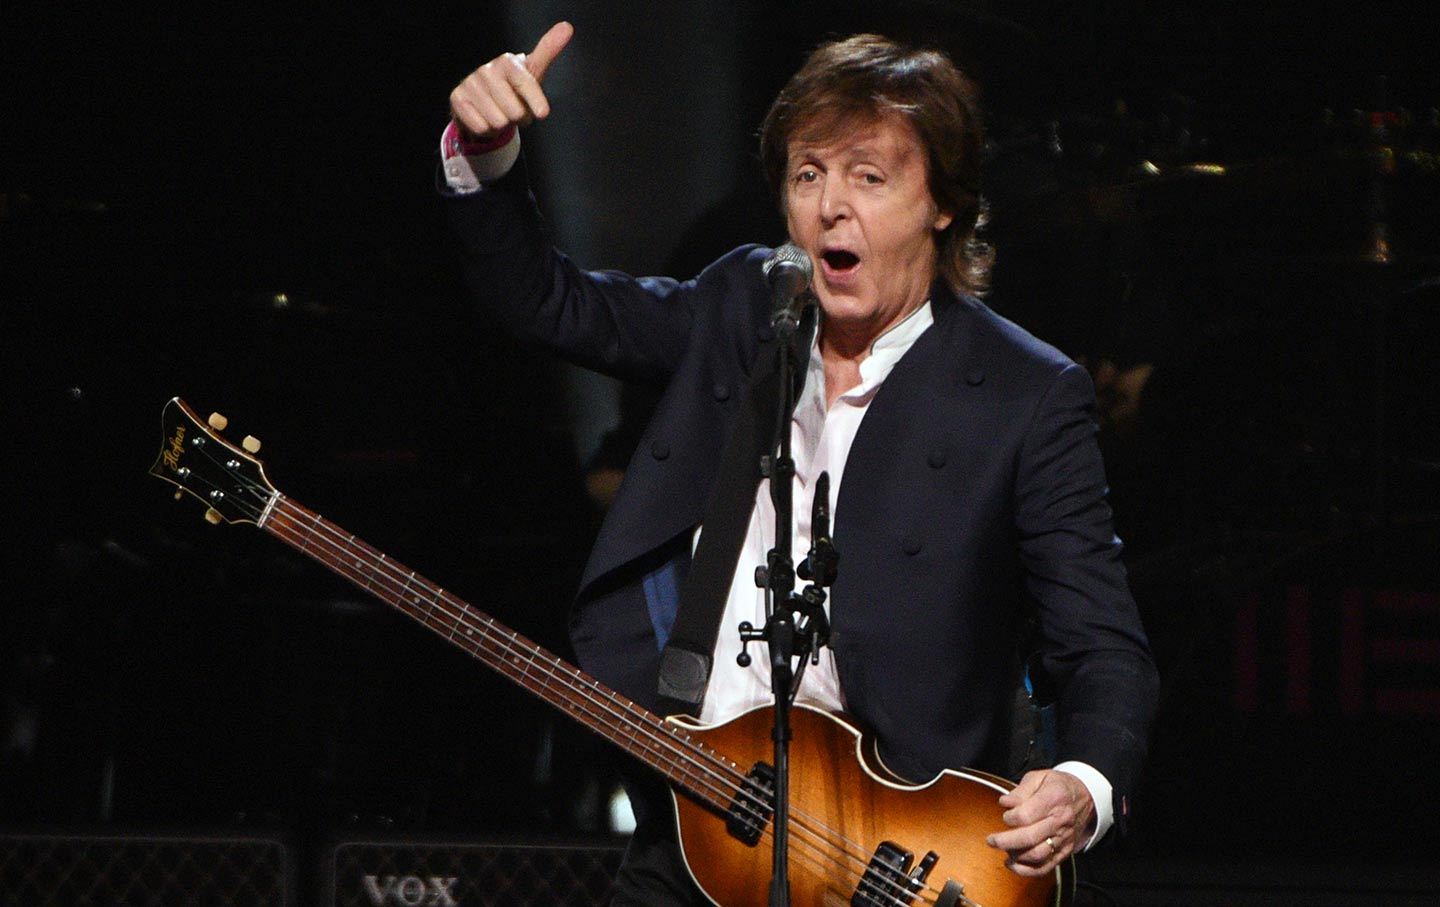 Paul McCartney Performing